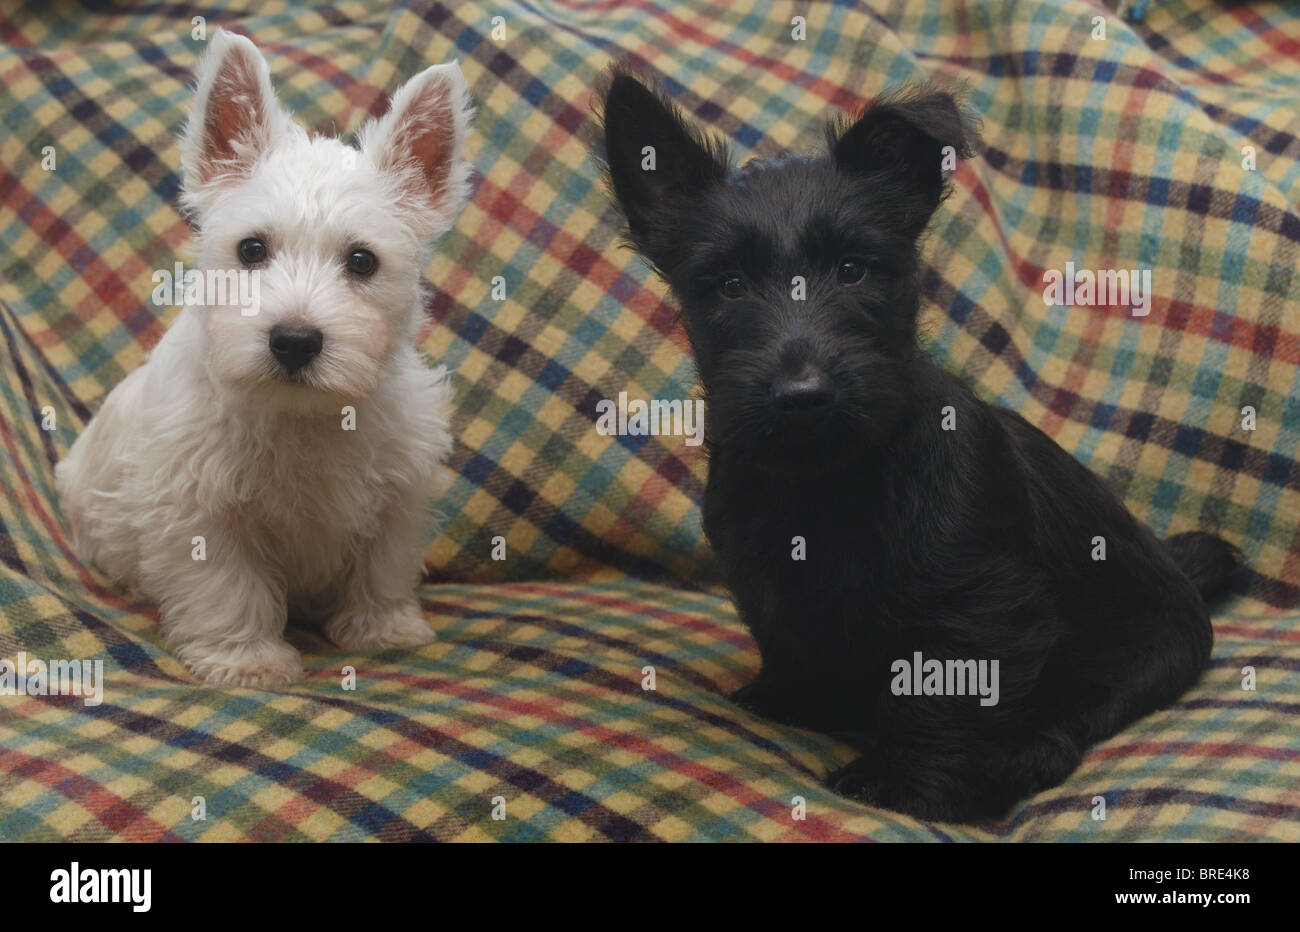 A Small White West Highland Terrier Westie Puppy Dog And A Small Stock Photo Alamy